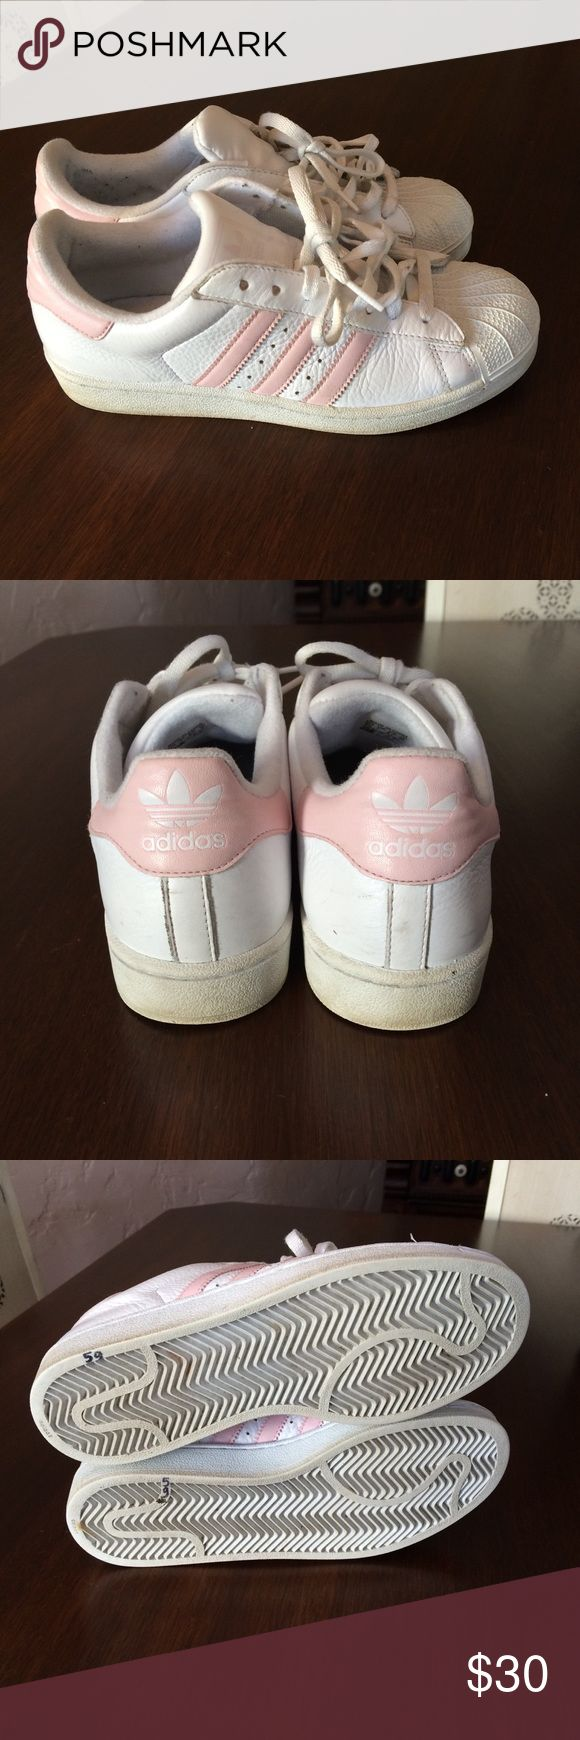 Vintage adidas originals superstar pink white 8.6 Adidas adidas Shoes Athletic Shoes